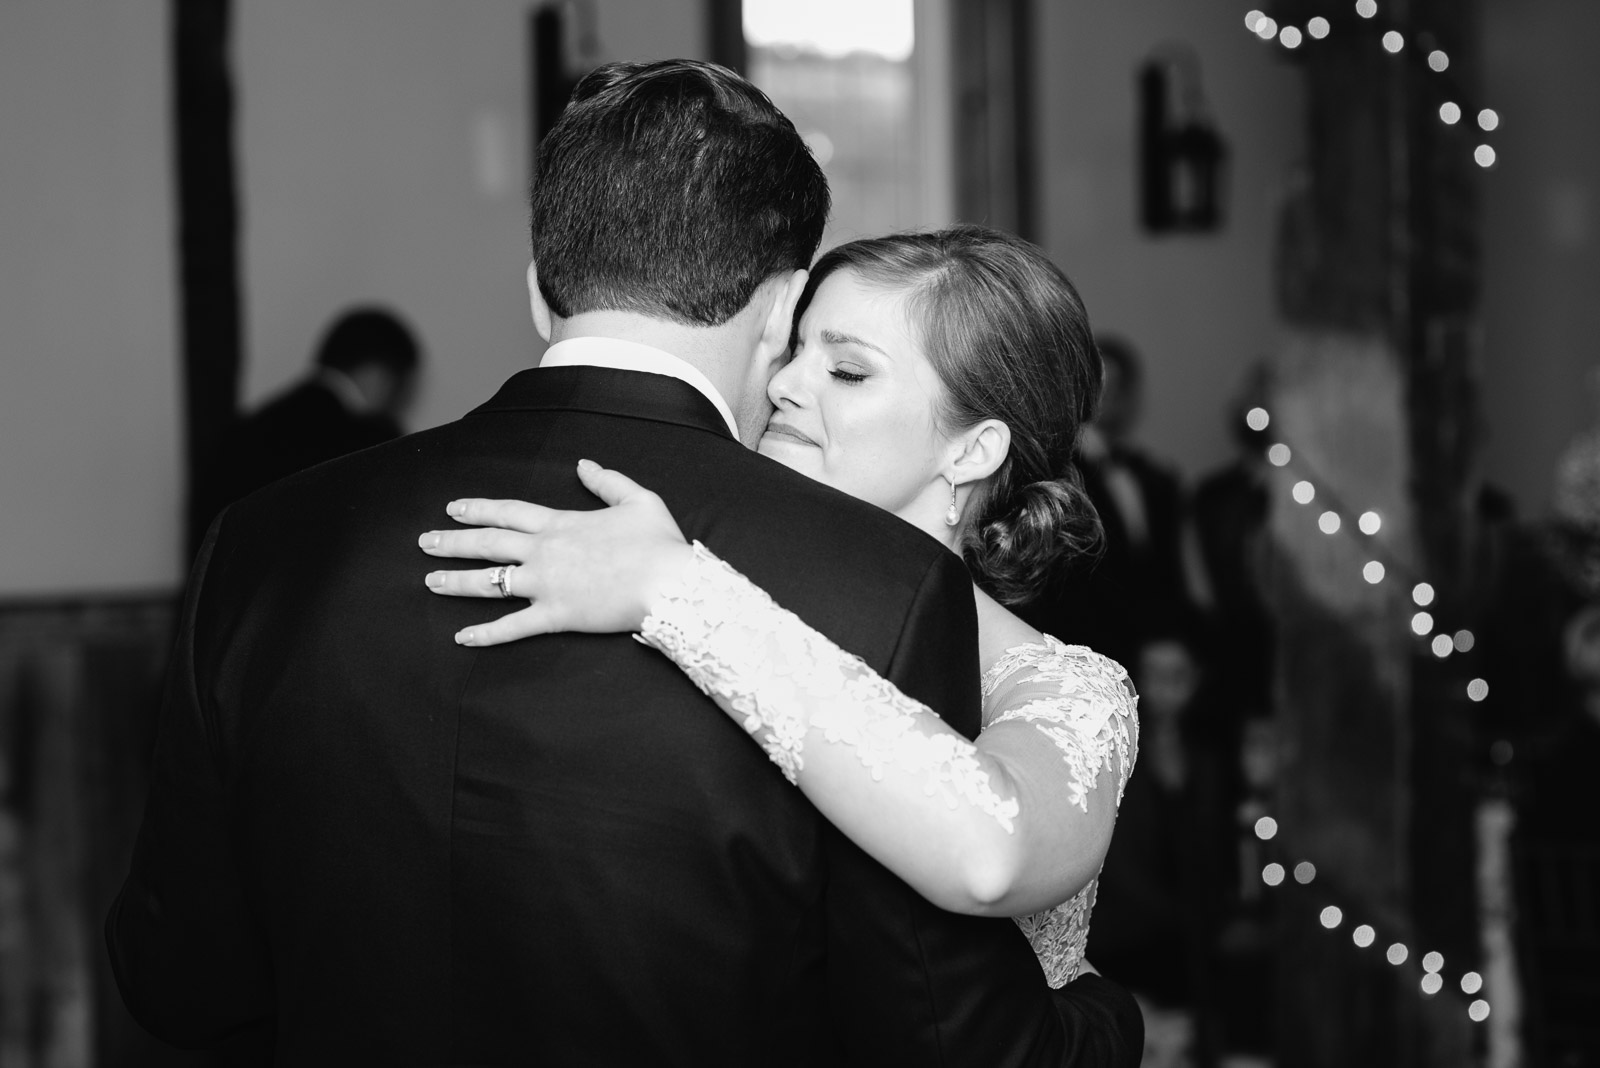 A first dance at a wedding by second photographer Mariah Fisher